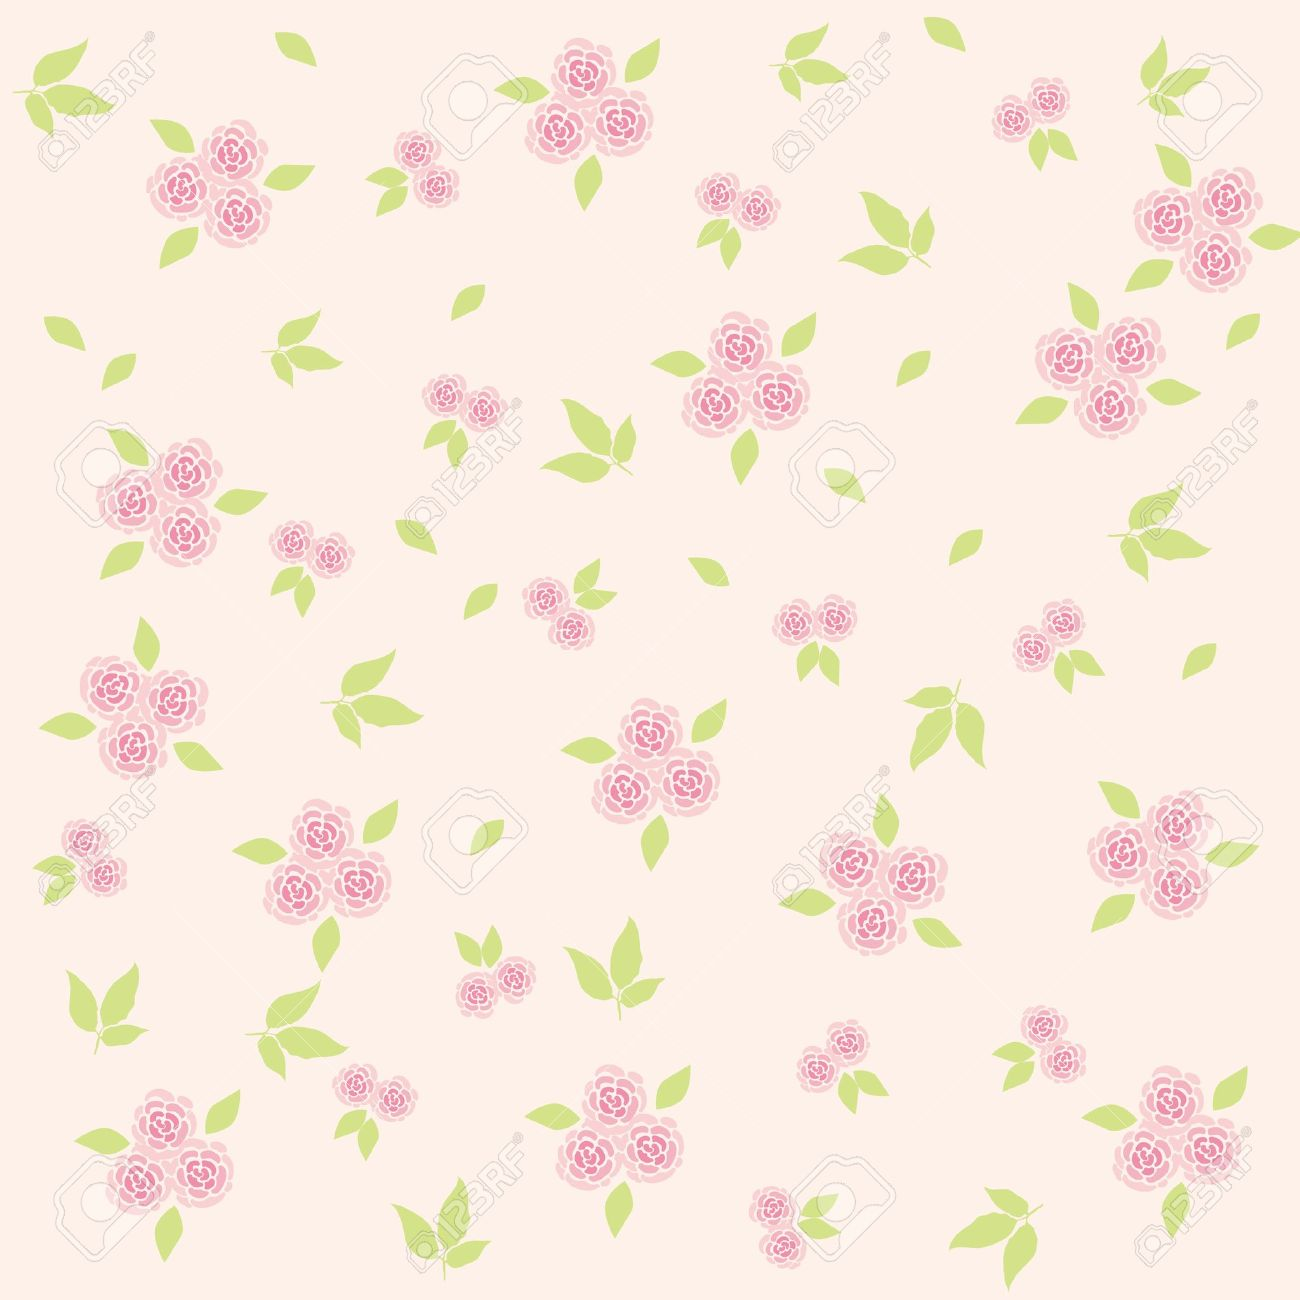 Flower Background Soft Pink Royalty Free Cliparts Vectors And